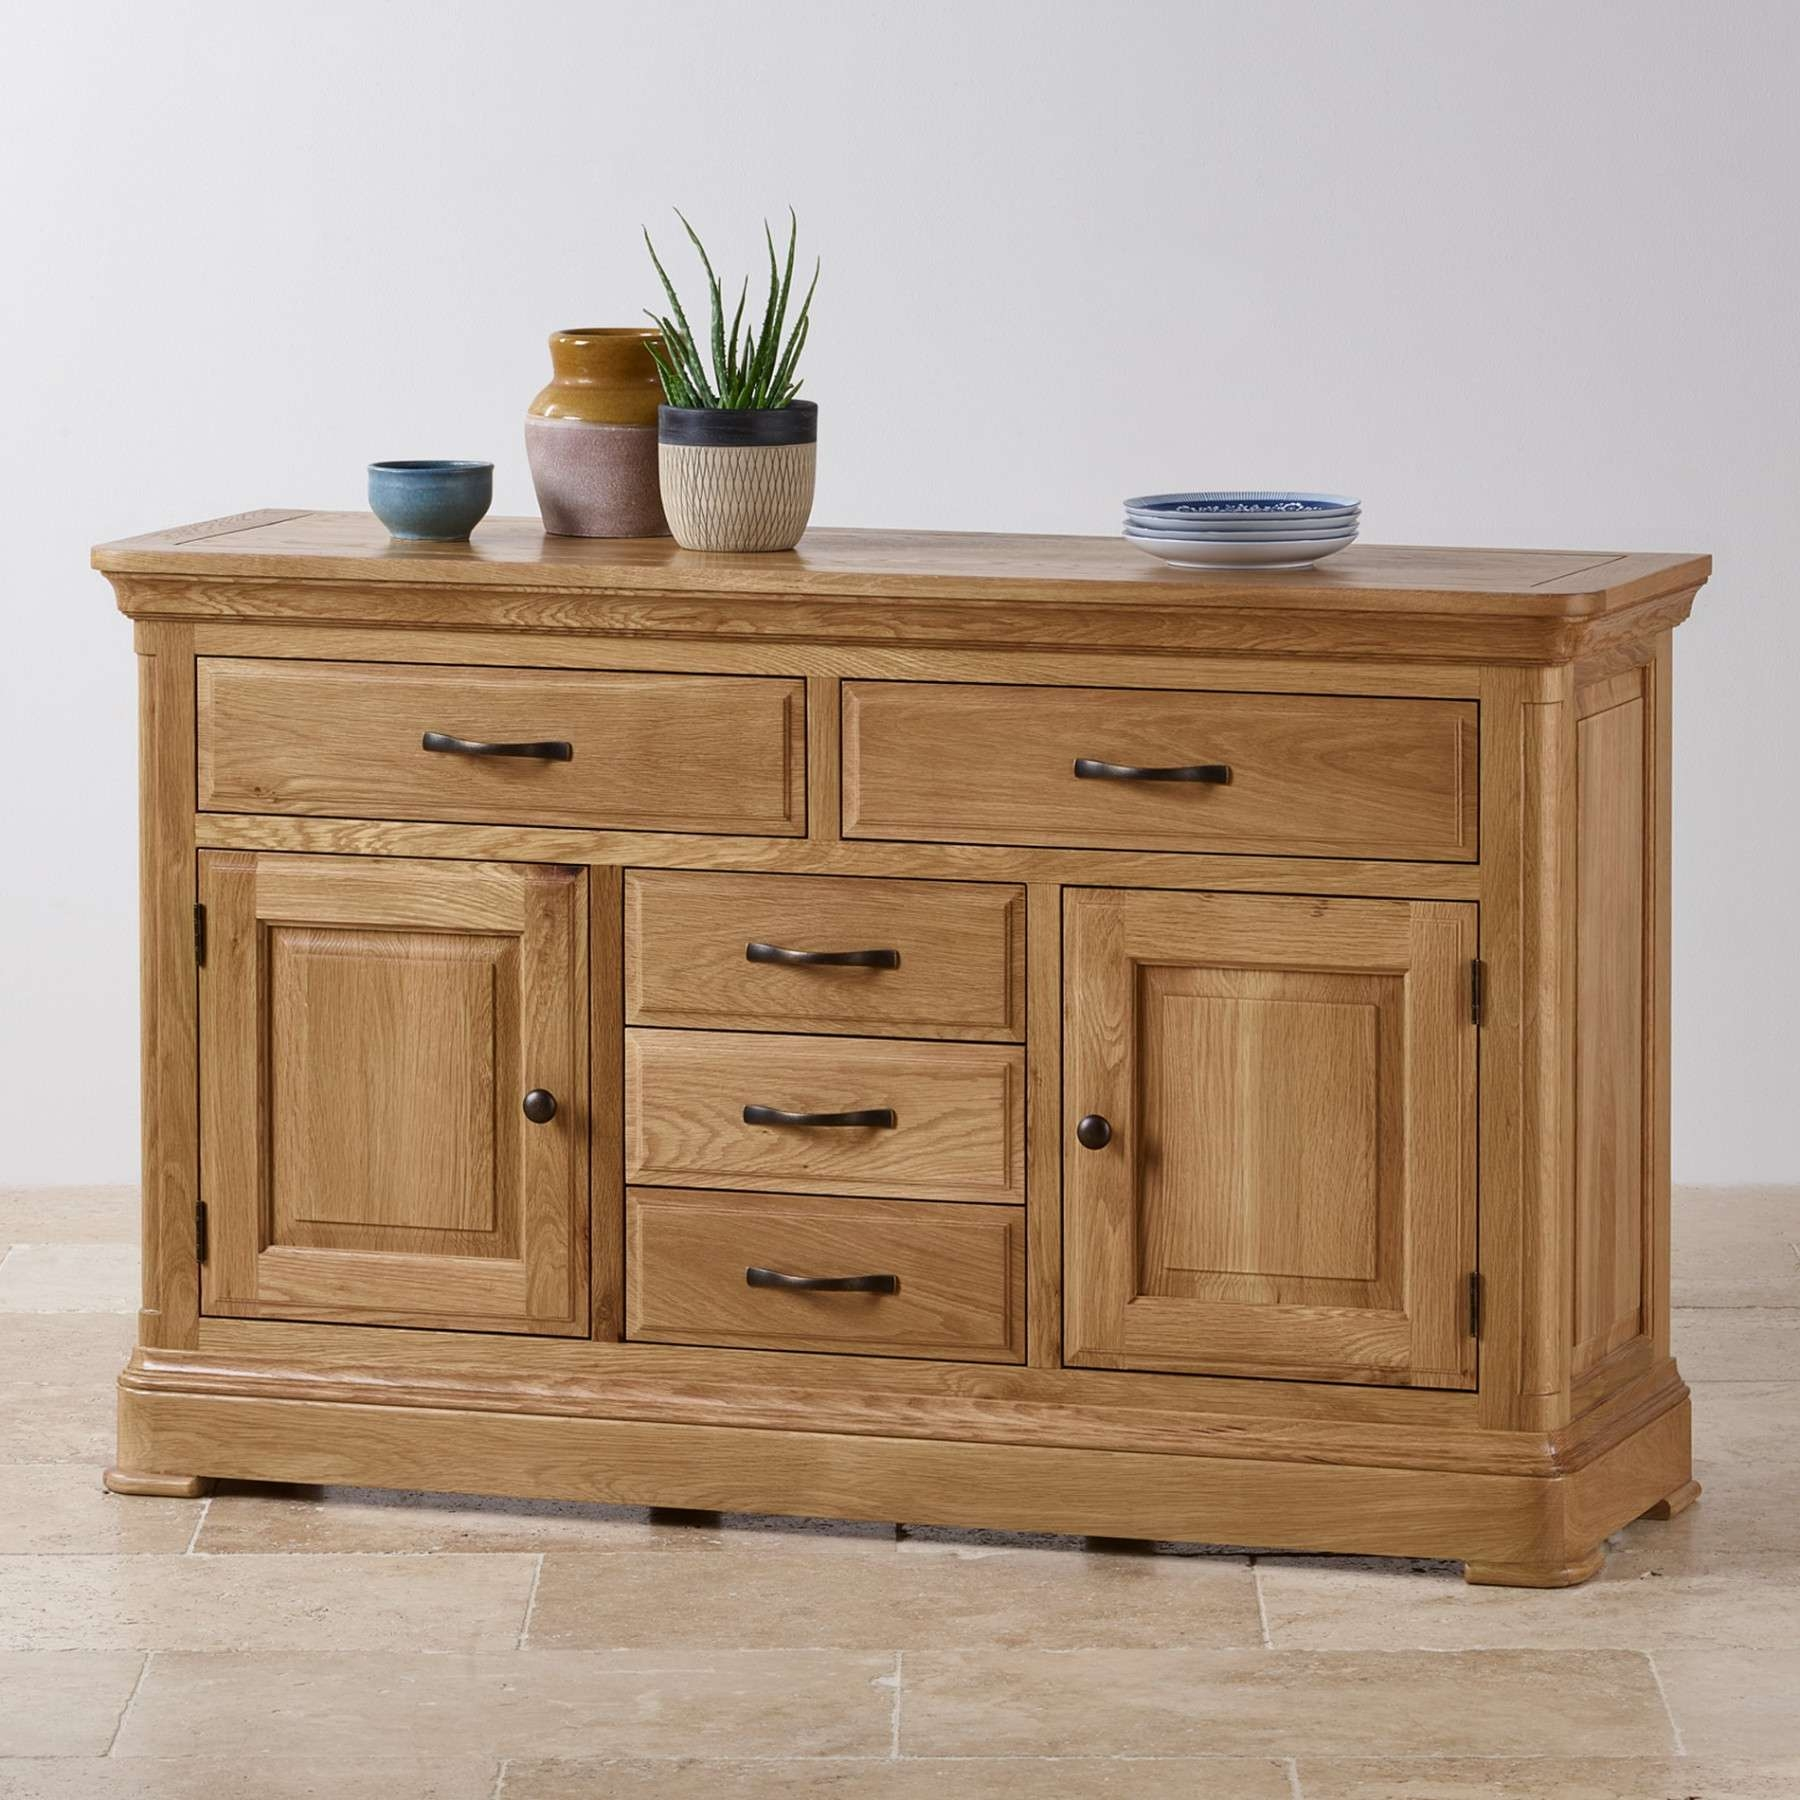 Canterbury Natural Solid Oak Large Sideboard | Sideboards | Dining Within Rustic Oak Large Sideboards (View 1 of 20)